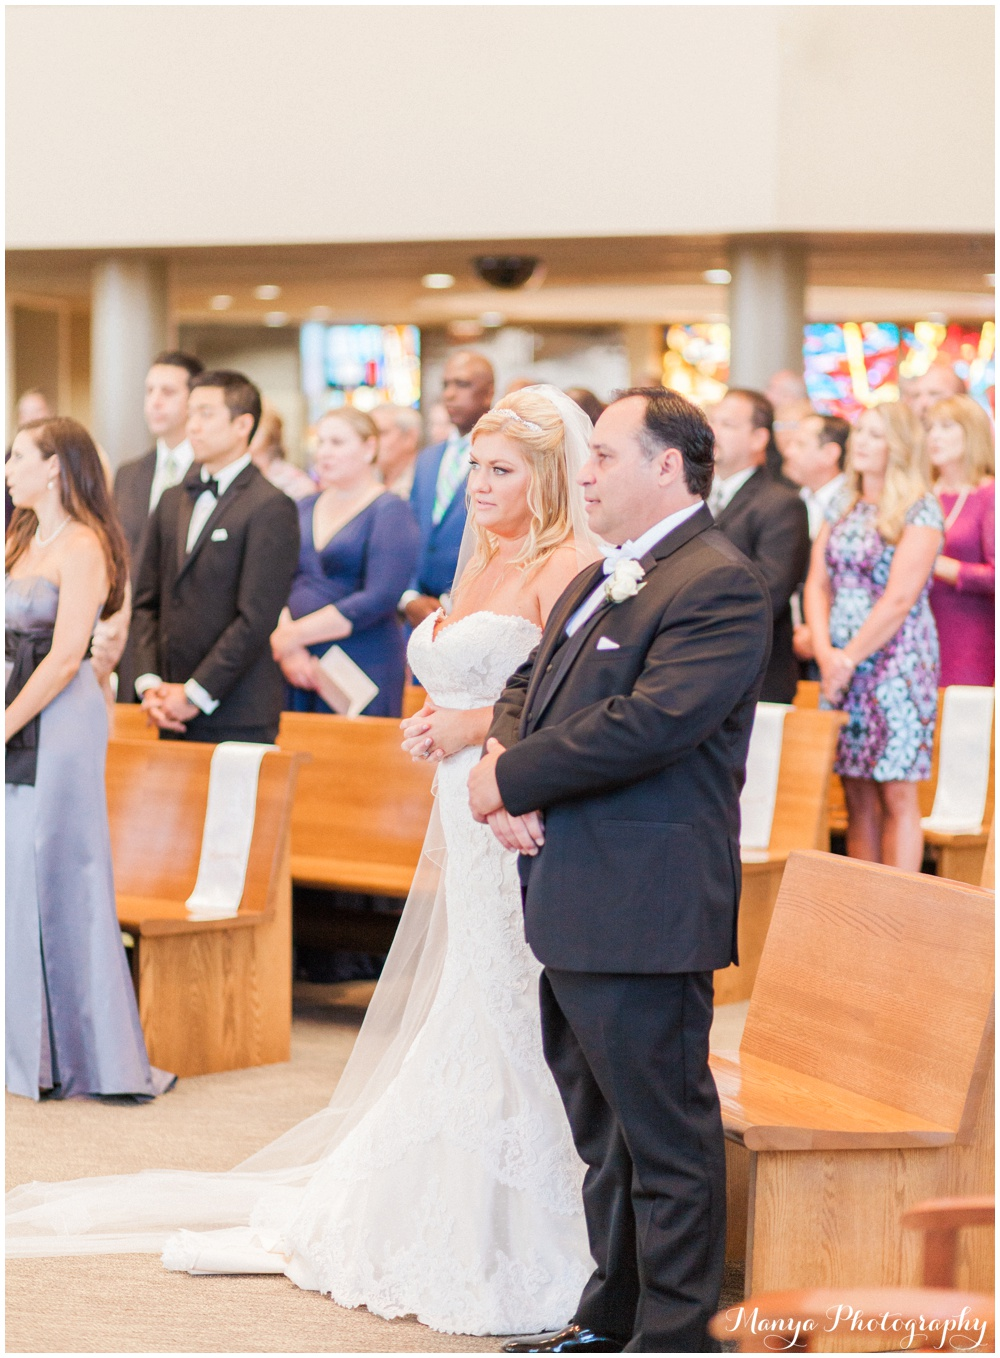 JandK_Wedding_Orange_County_Wedding_Photographer_Manya_Photography__0036